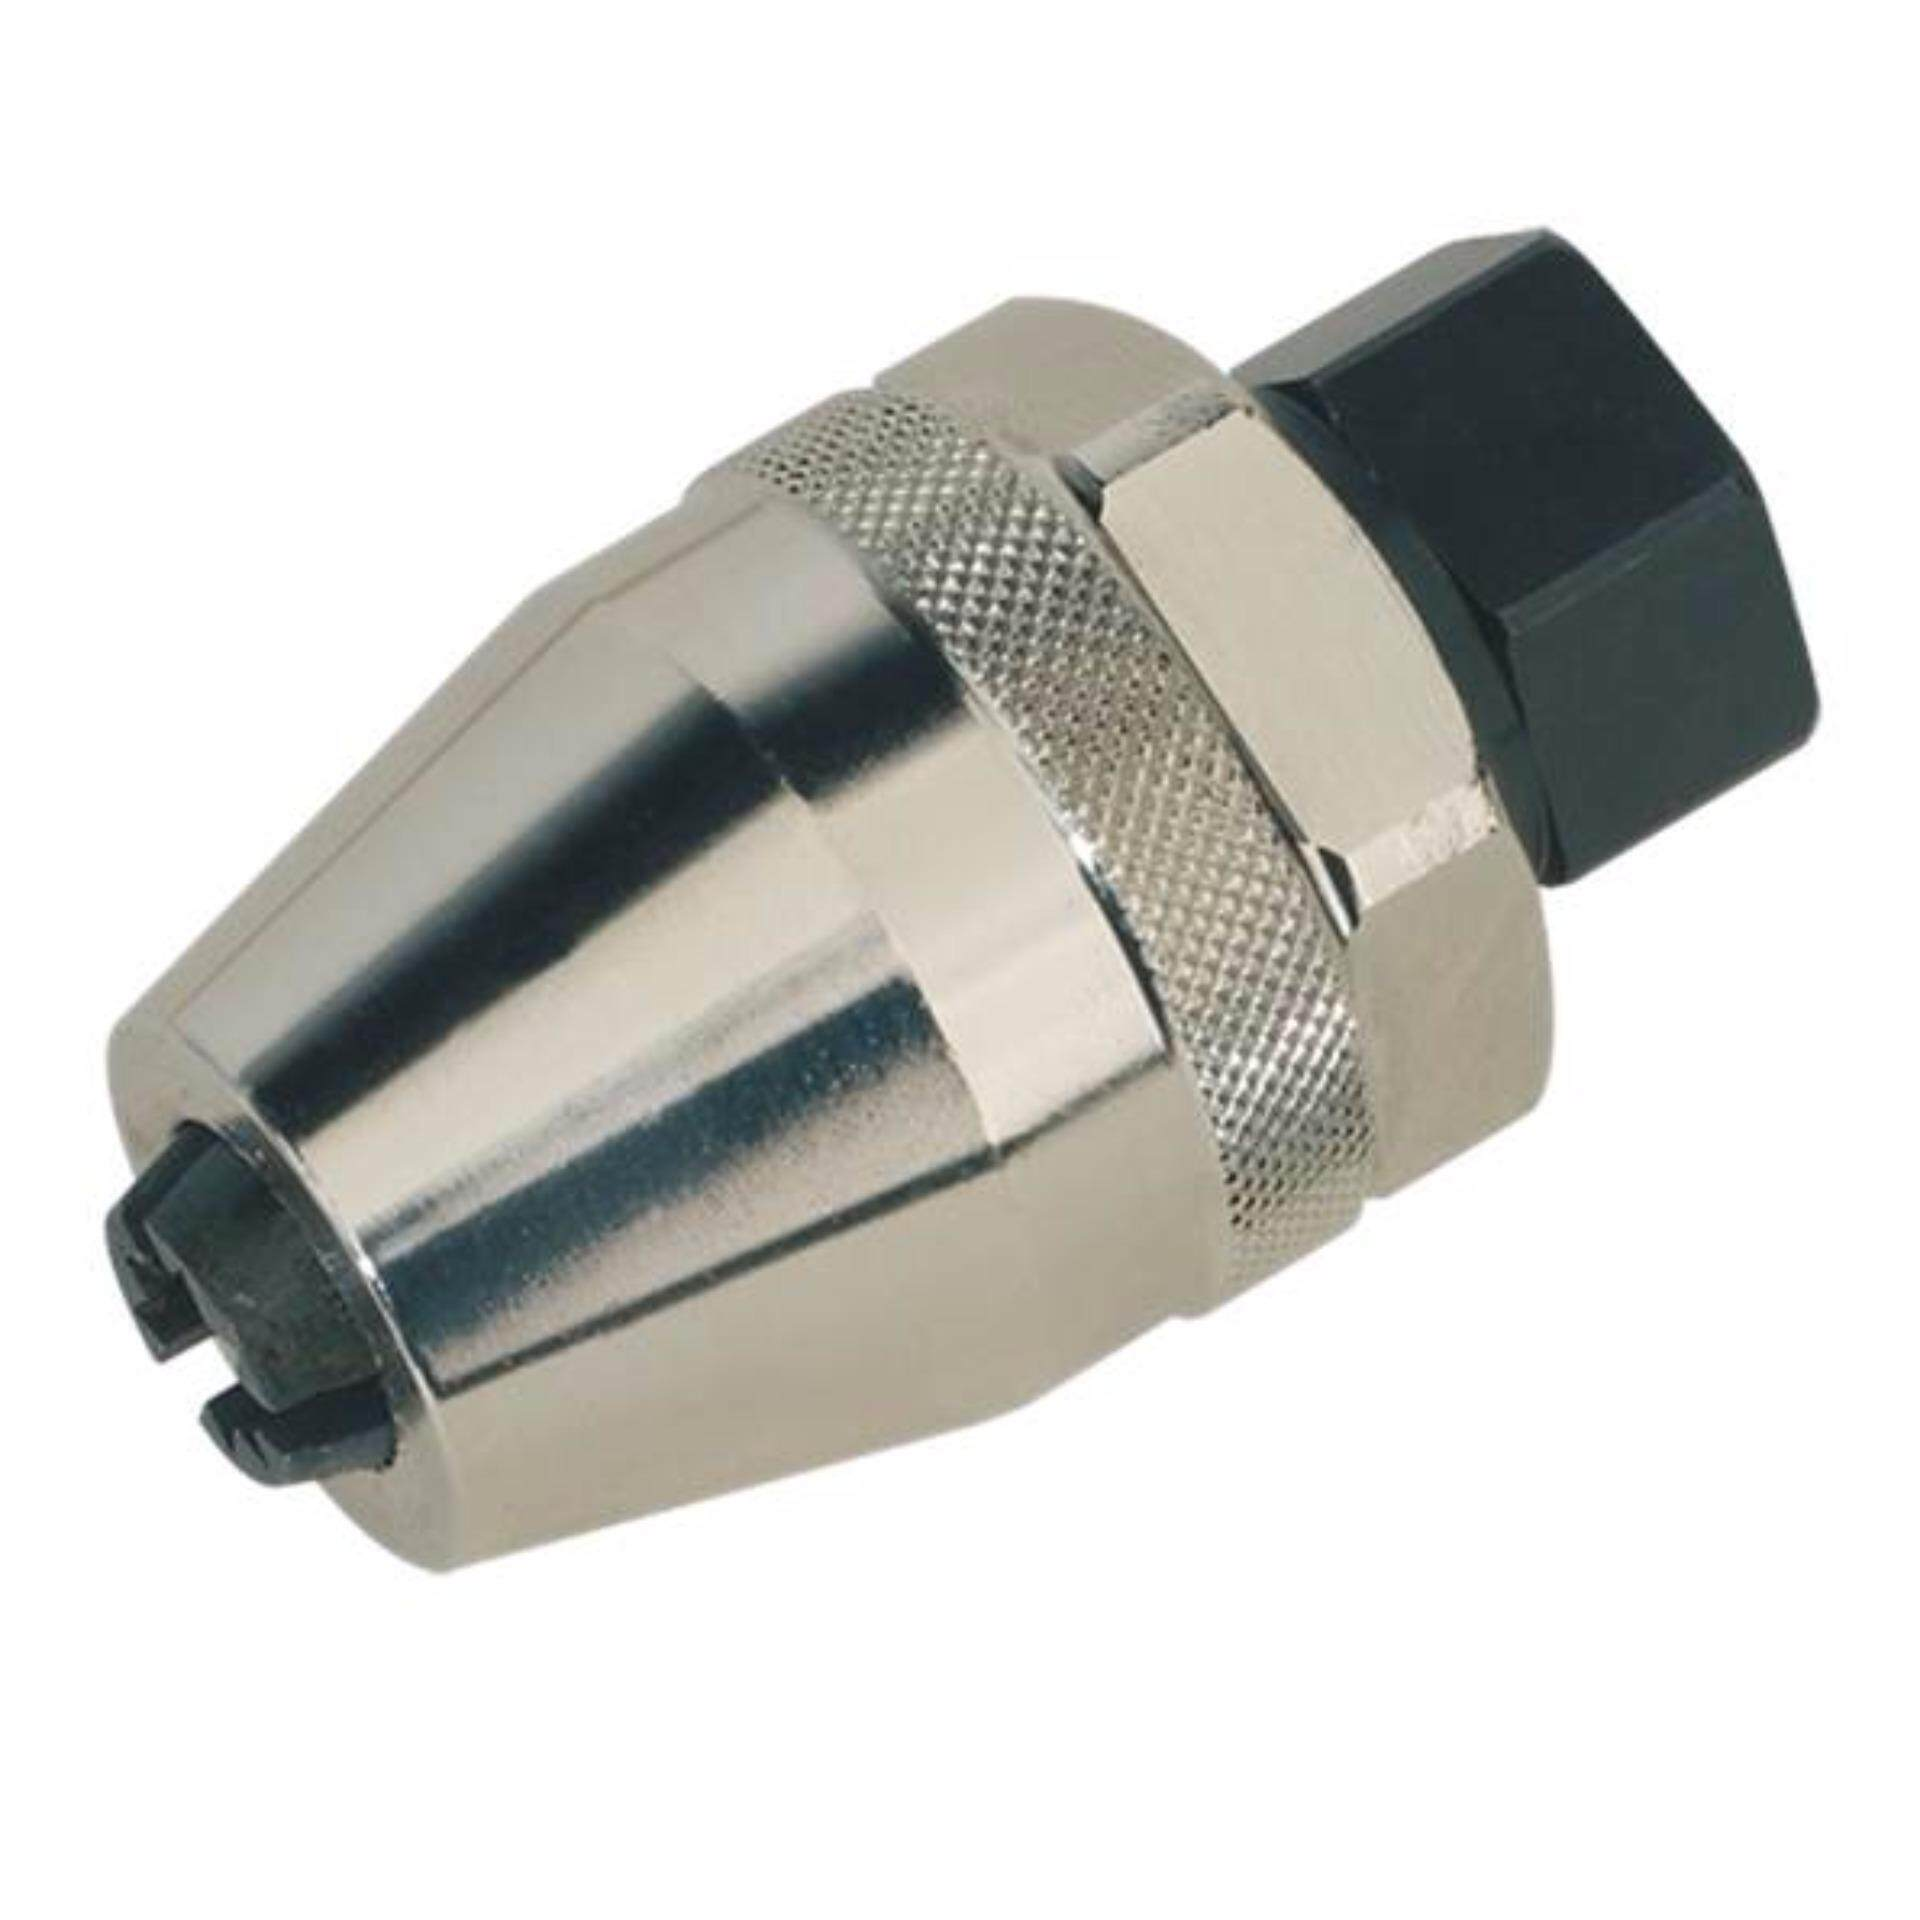 """Sealey Impact Stud Extractor 6-12mm 1/2""""Sq Drive"""